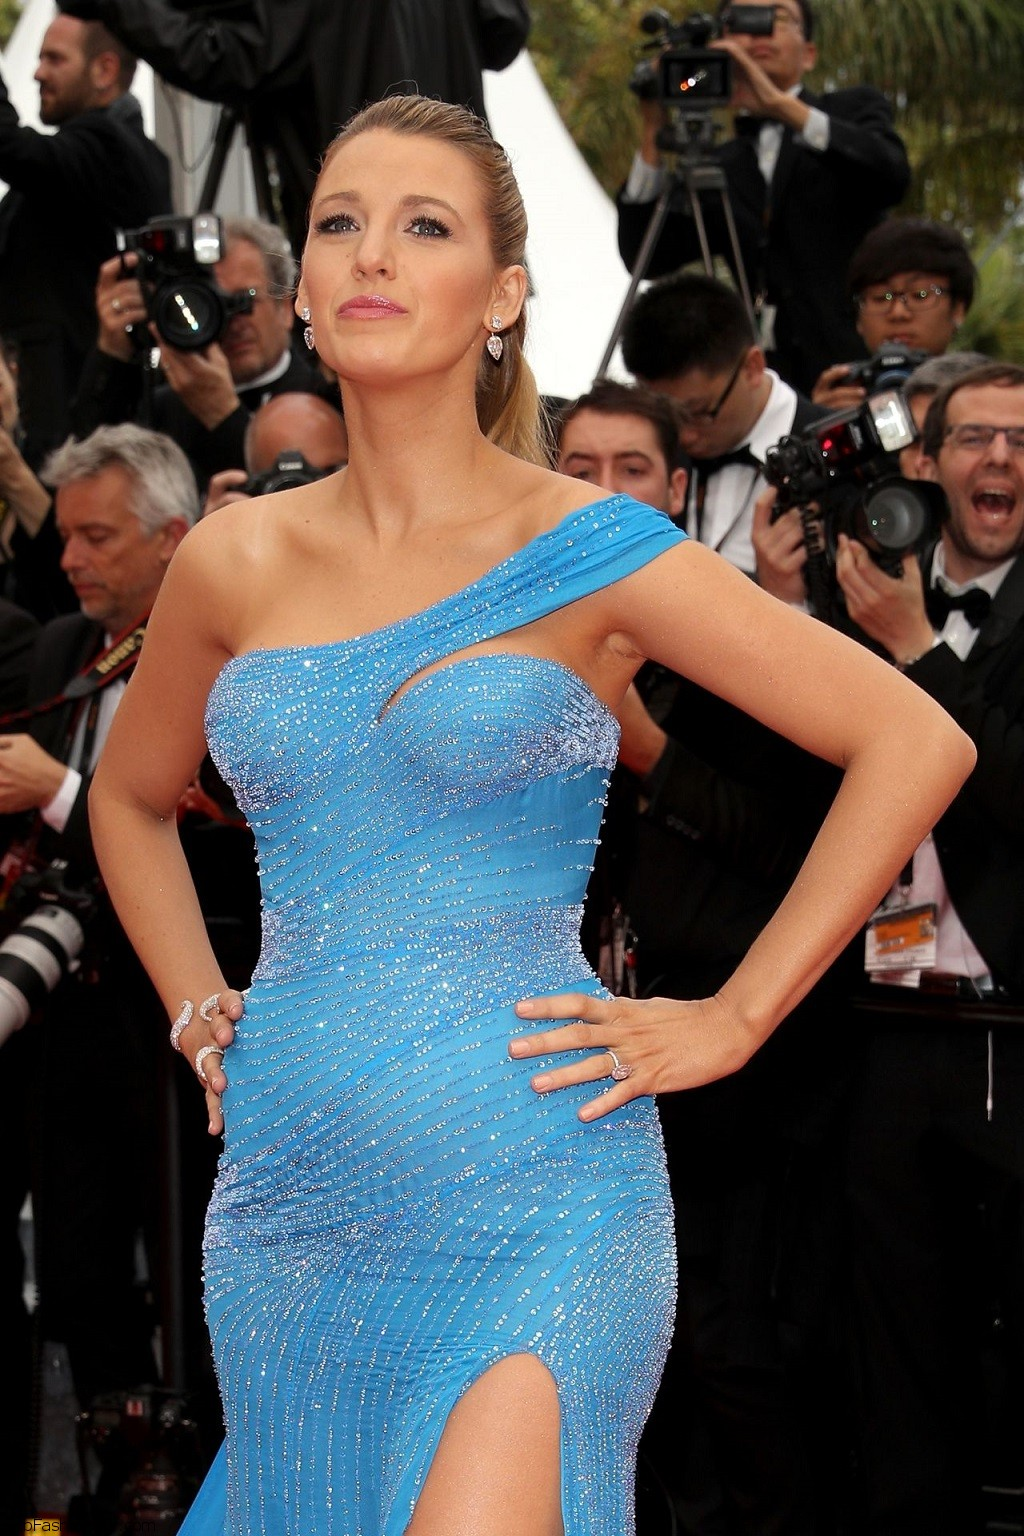 blake-lively-the-bfg-premiere-cannes-film-festival-in-cannes-5-14-2016-9